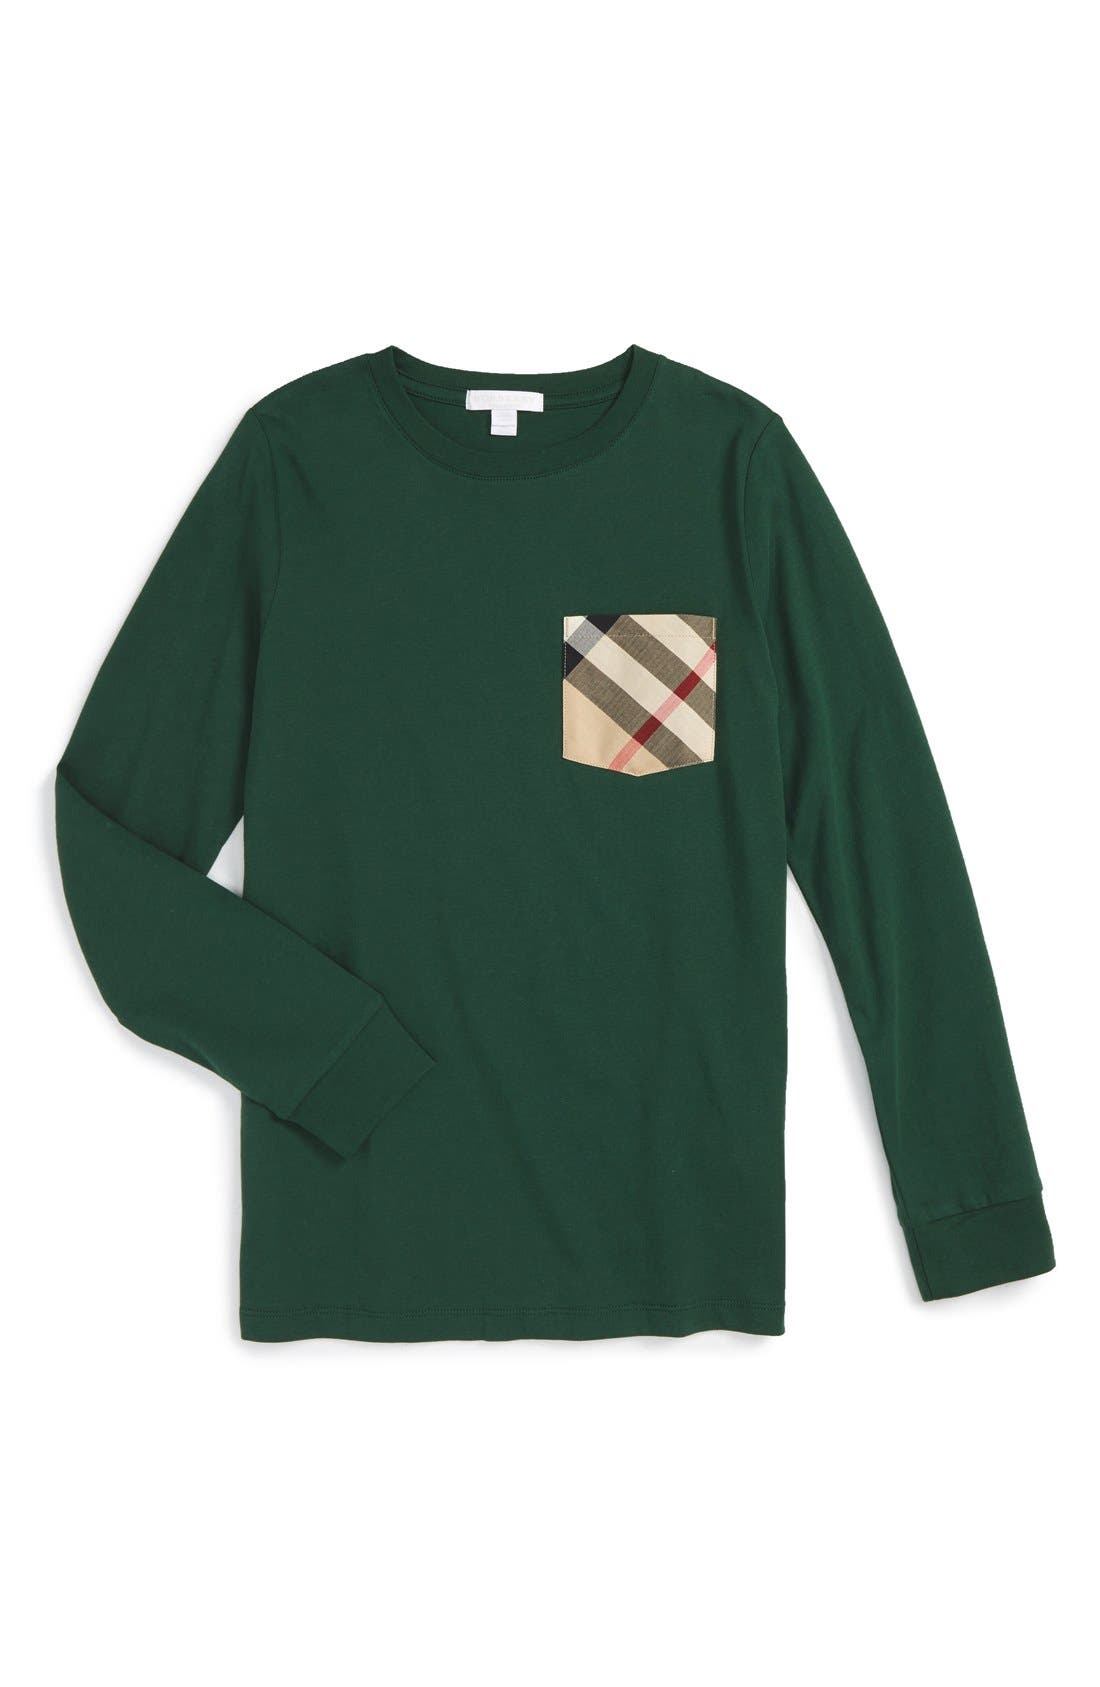 Check Pocket T-Shirt,                         Main,                         color, Forest Green